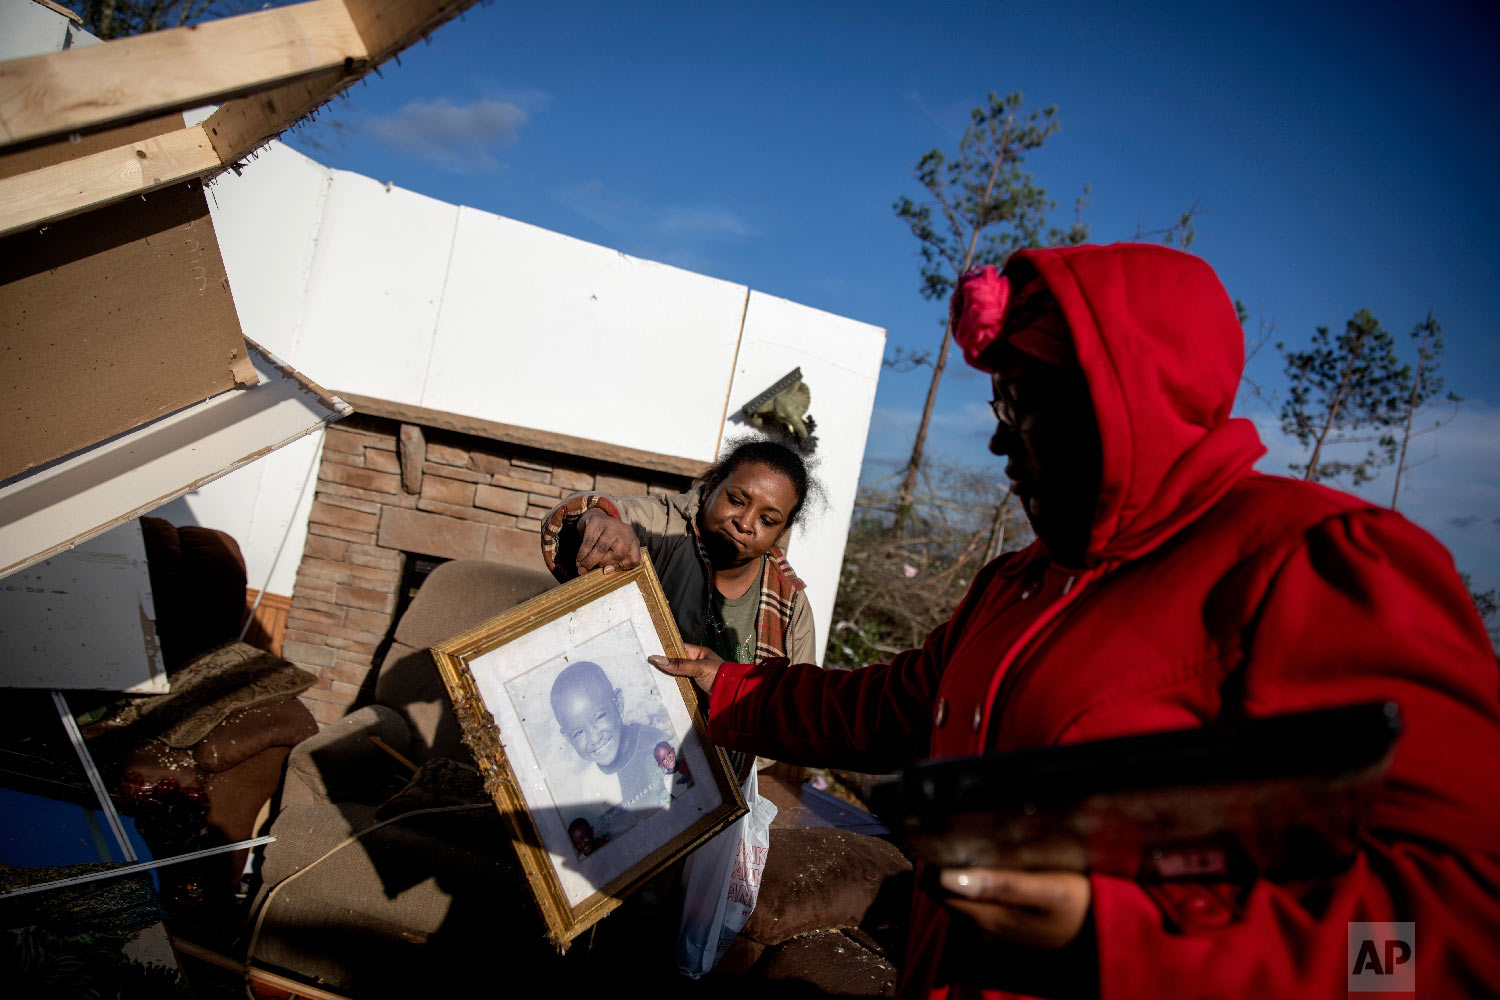 Shiraka Baker, left, passes a photo of her son to her daughter, Kiara Slater, while retrieving personal items from her damaged home where she survived a tornado a day earlier in Beauregard, Ala., March 4, 2019. (AP Photo/David Goldman)